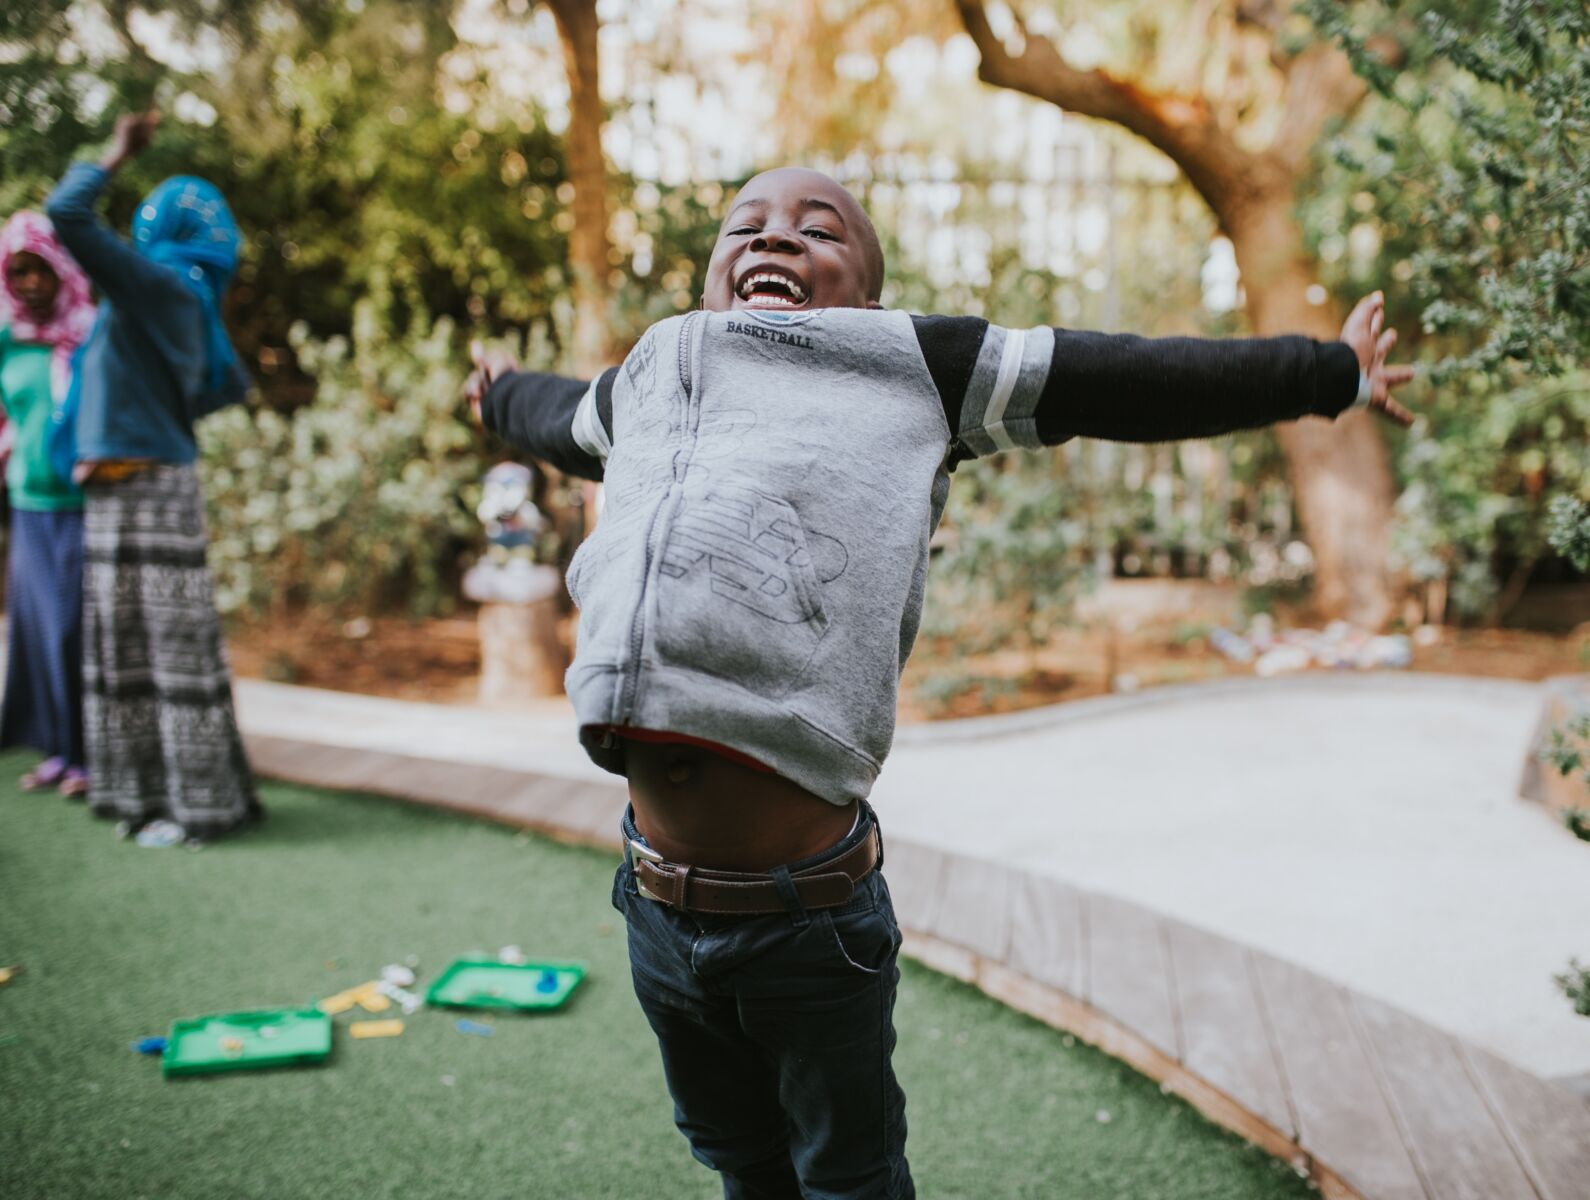 child excited playing mini golf